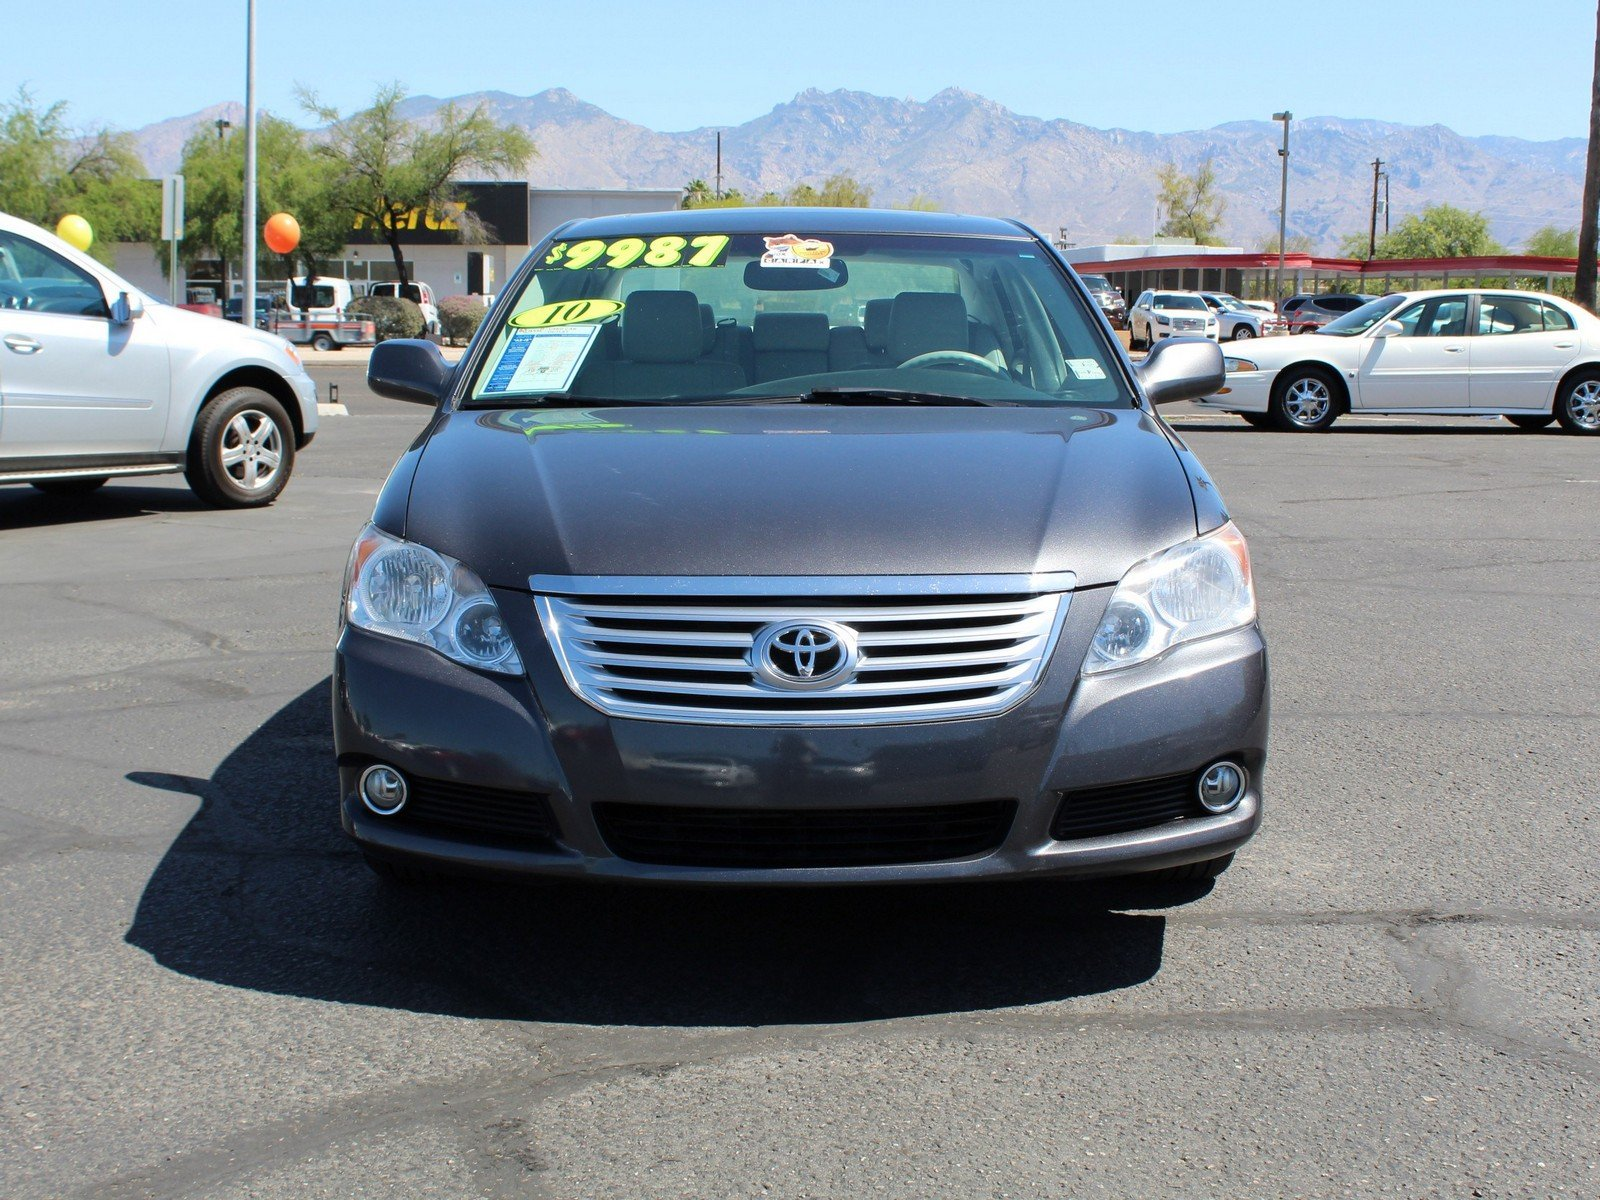 Pre-Owned 2010 Toyota Avalon XLS 4dr Car in Tucson #W60PO29531A | Royal Automotive Group